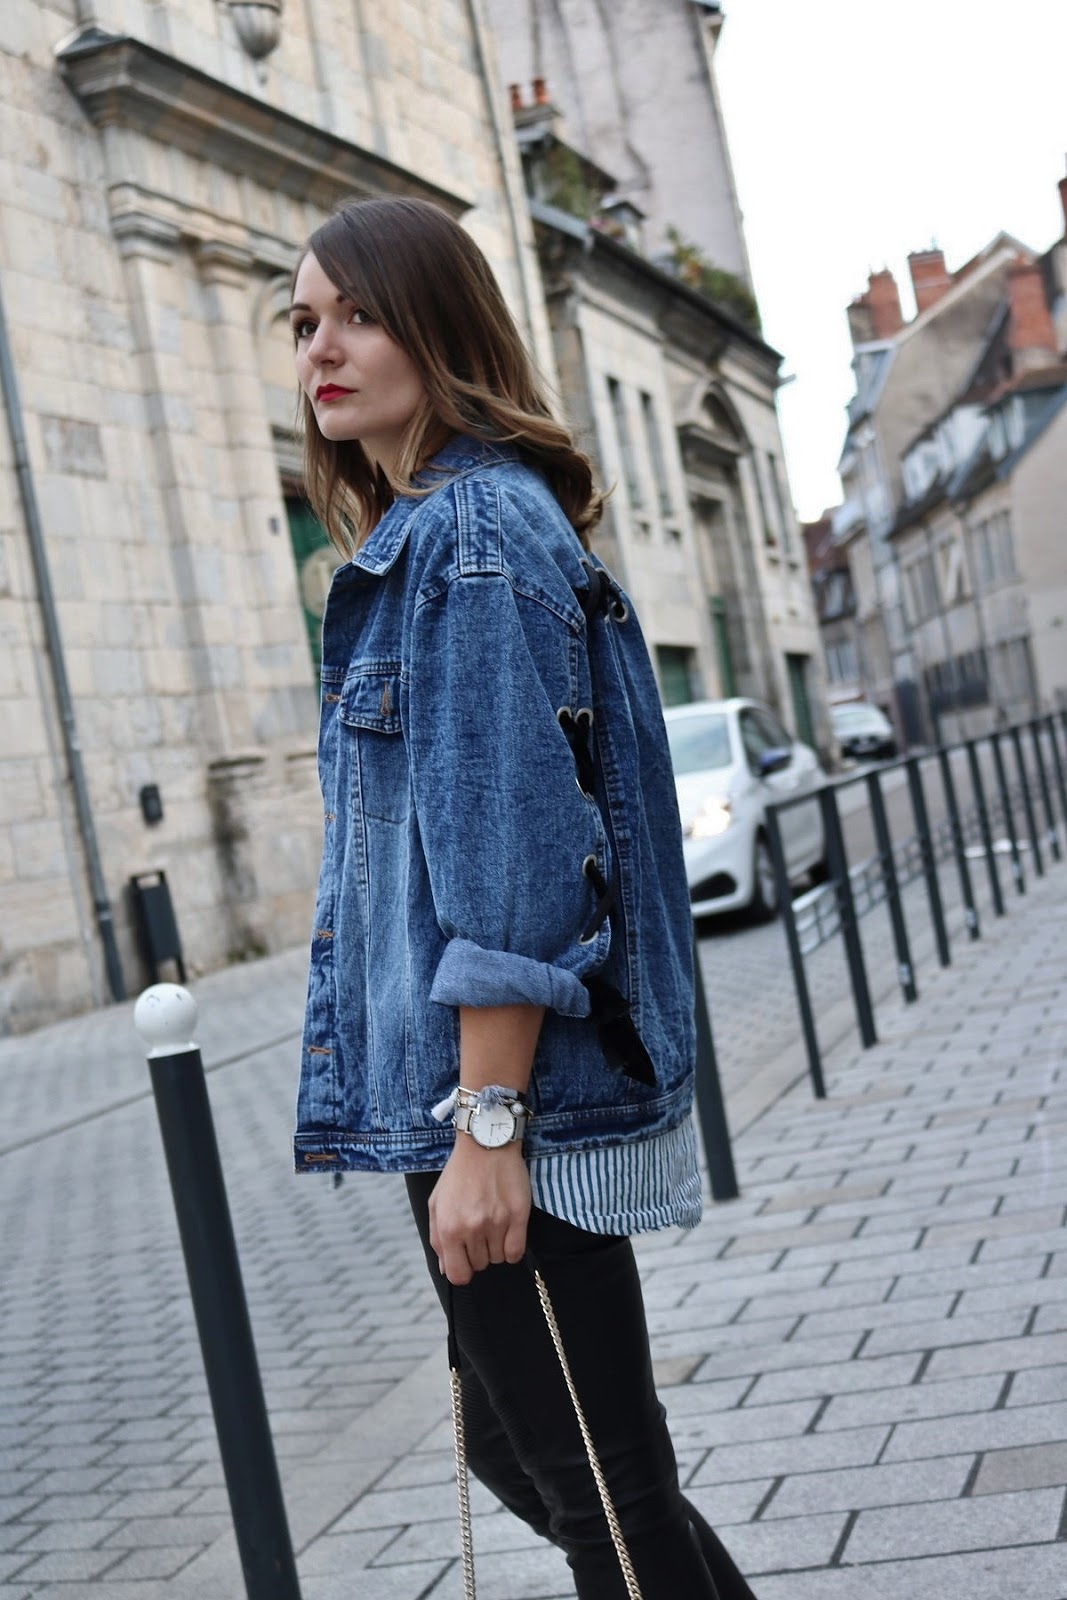 pauline-dress-tenue-look-besancon-veste-denim-lace-up-noir-tregging-chemise-rayee-sac-leo-zoom